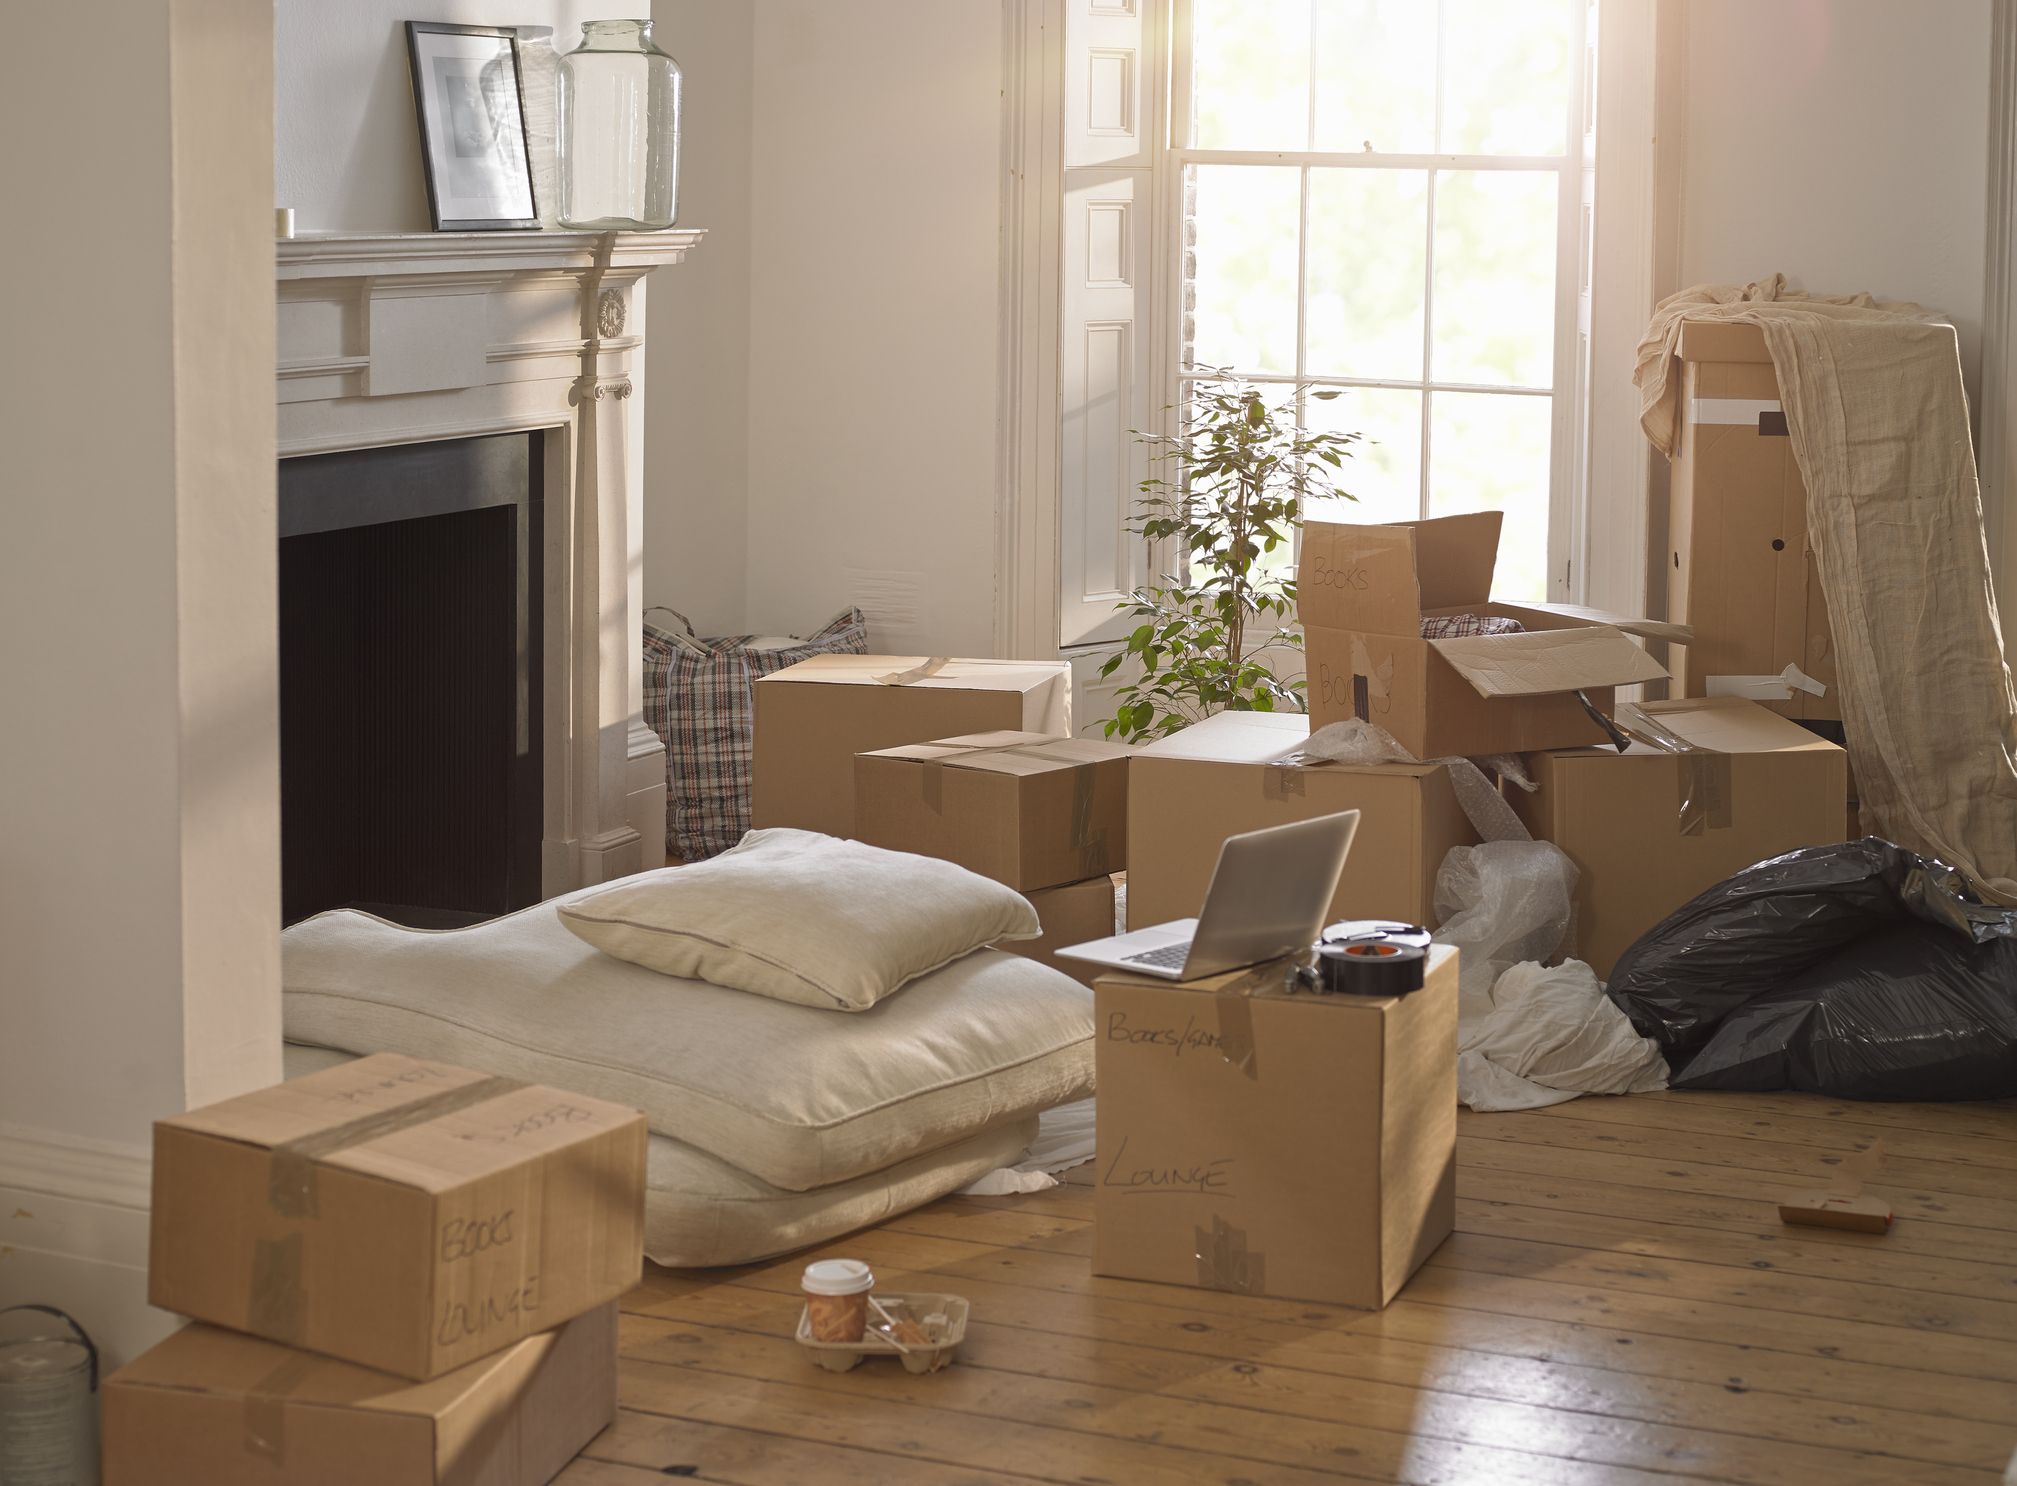 15 struggles of moving house